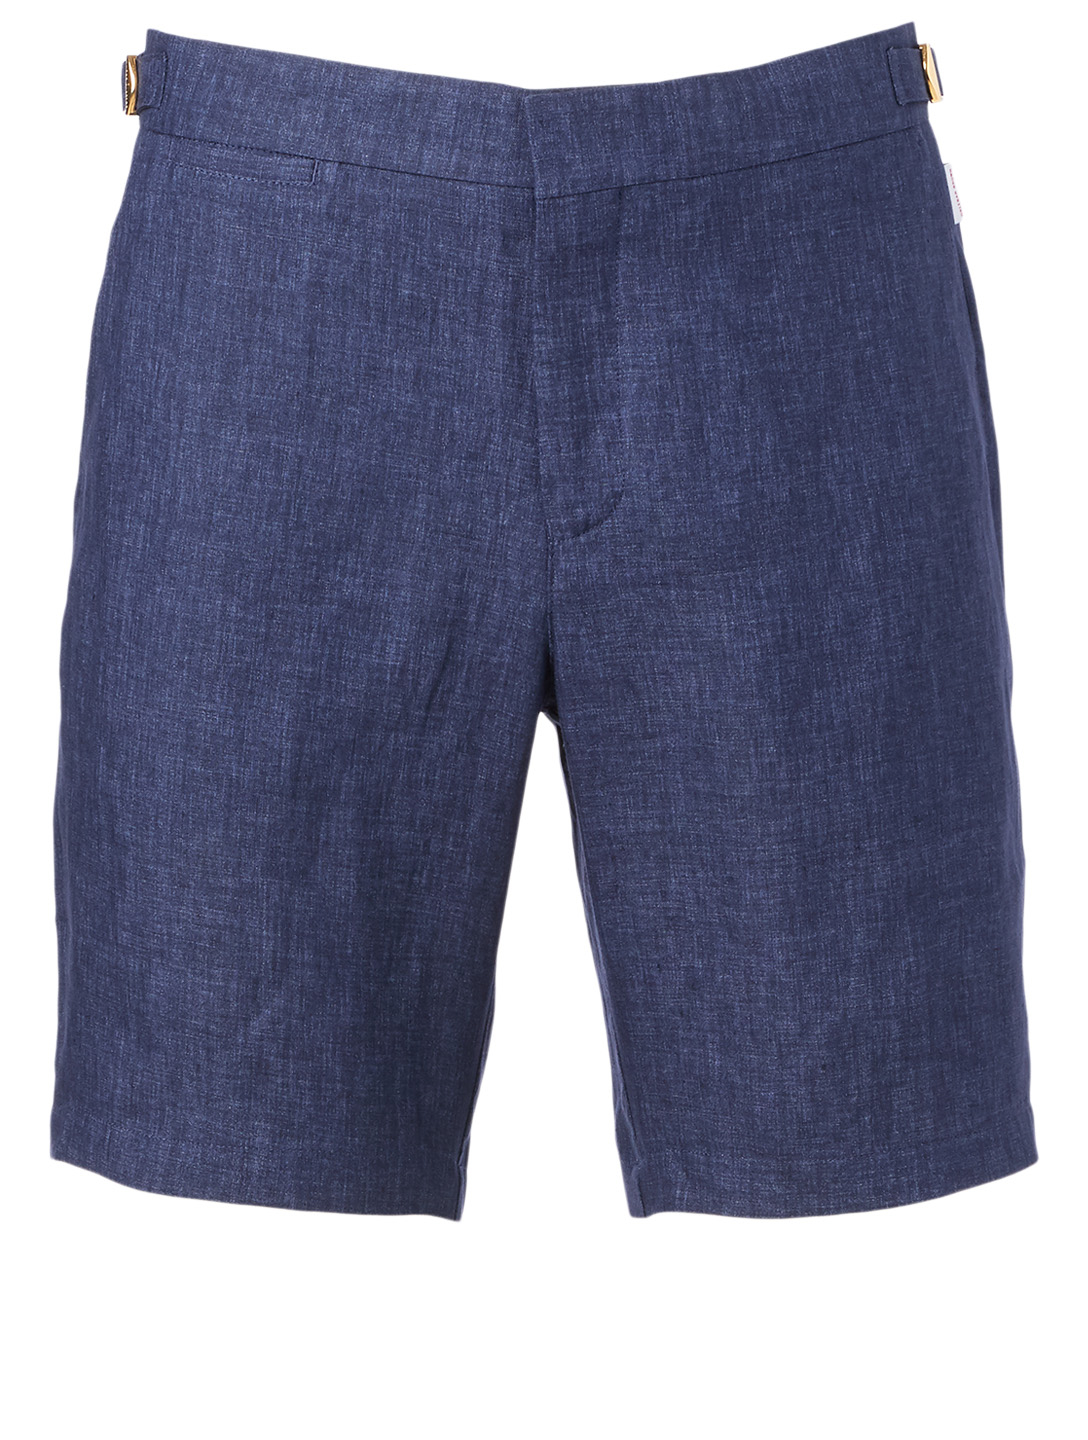 ORLEBAR BROWN Norwich X Linen Shorts Men's Blue